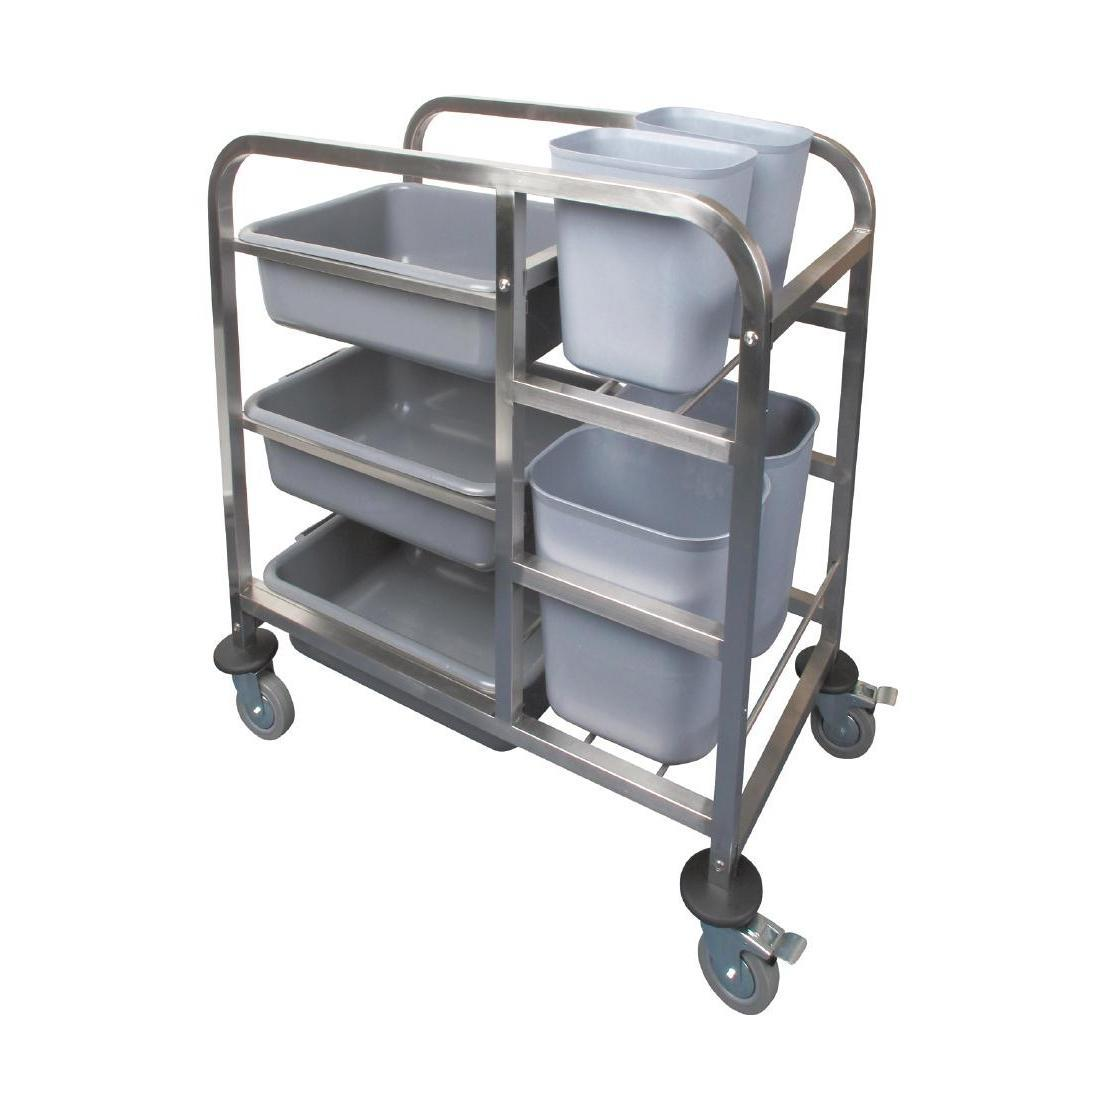 Vogue Stainless Steel Bussing Trolley - Each - DK738